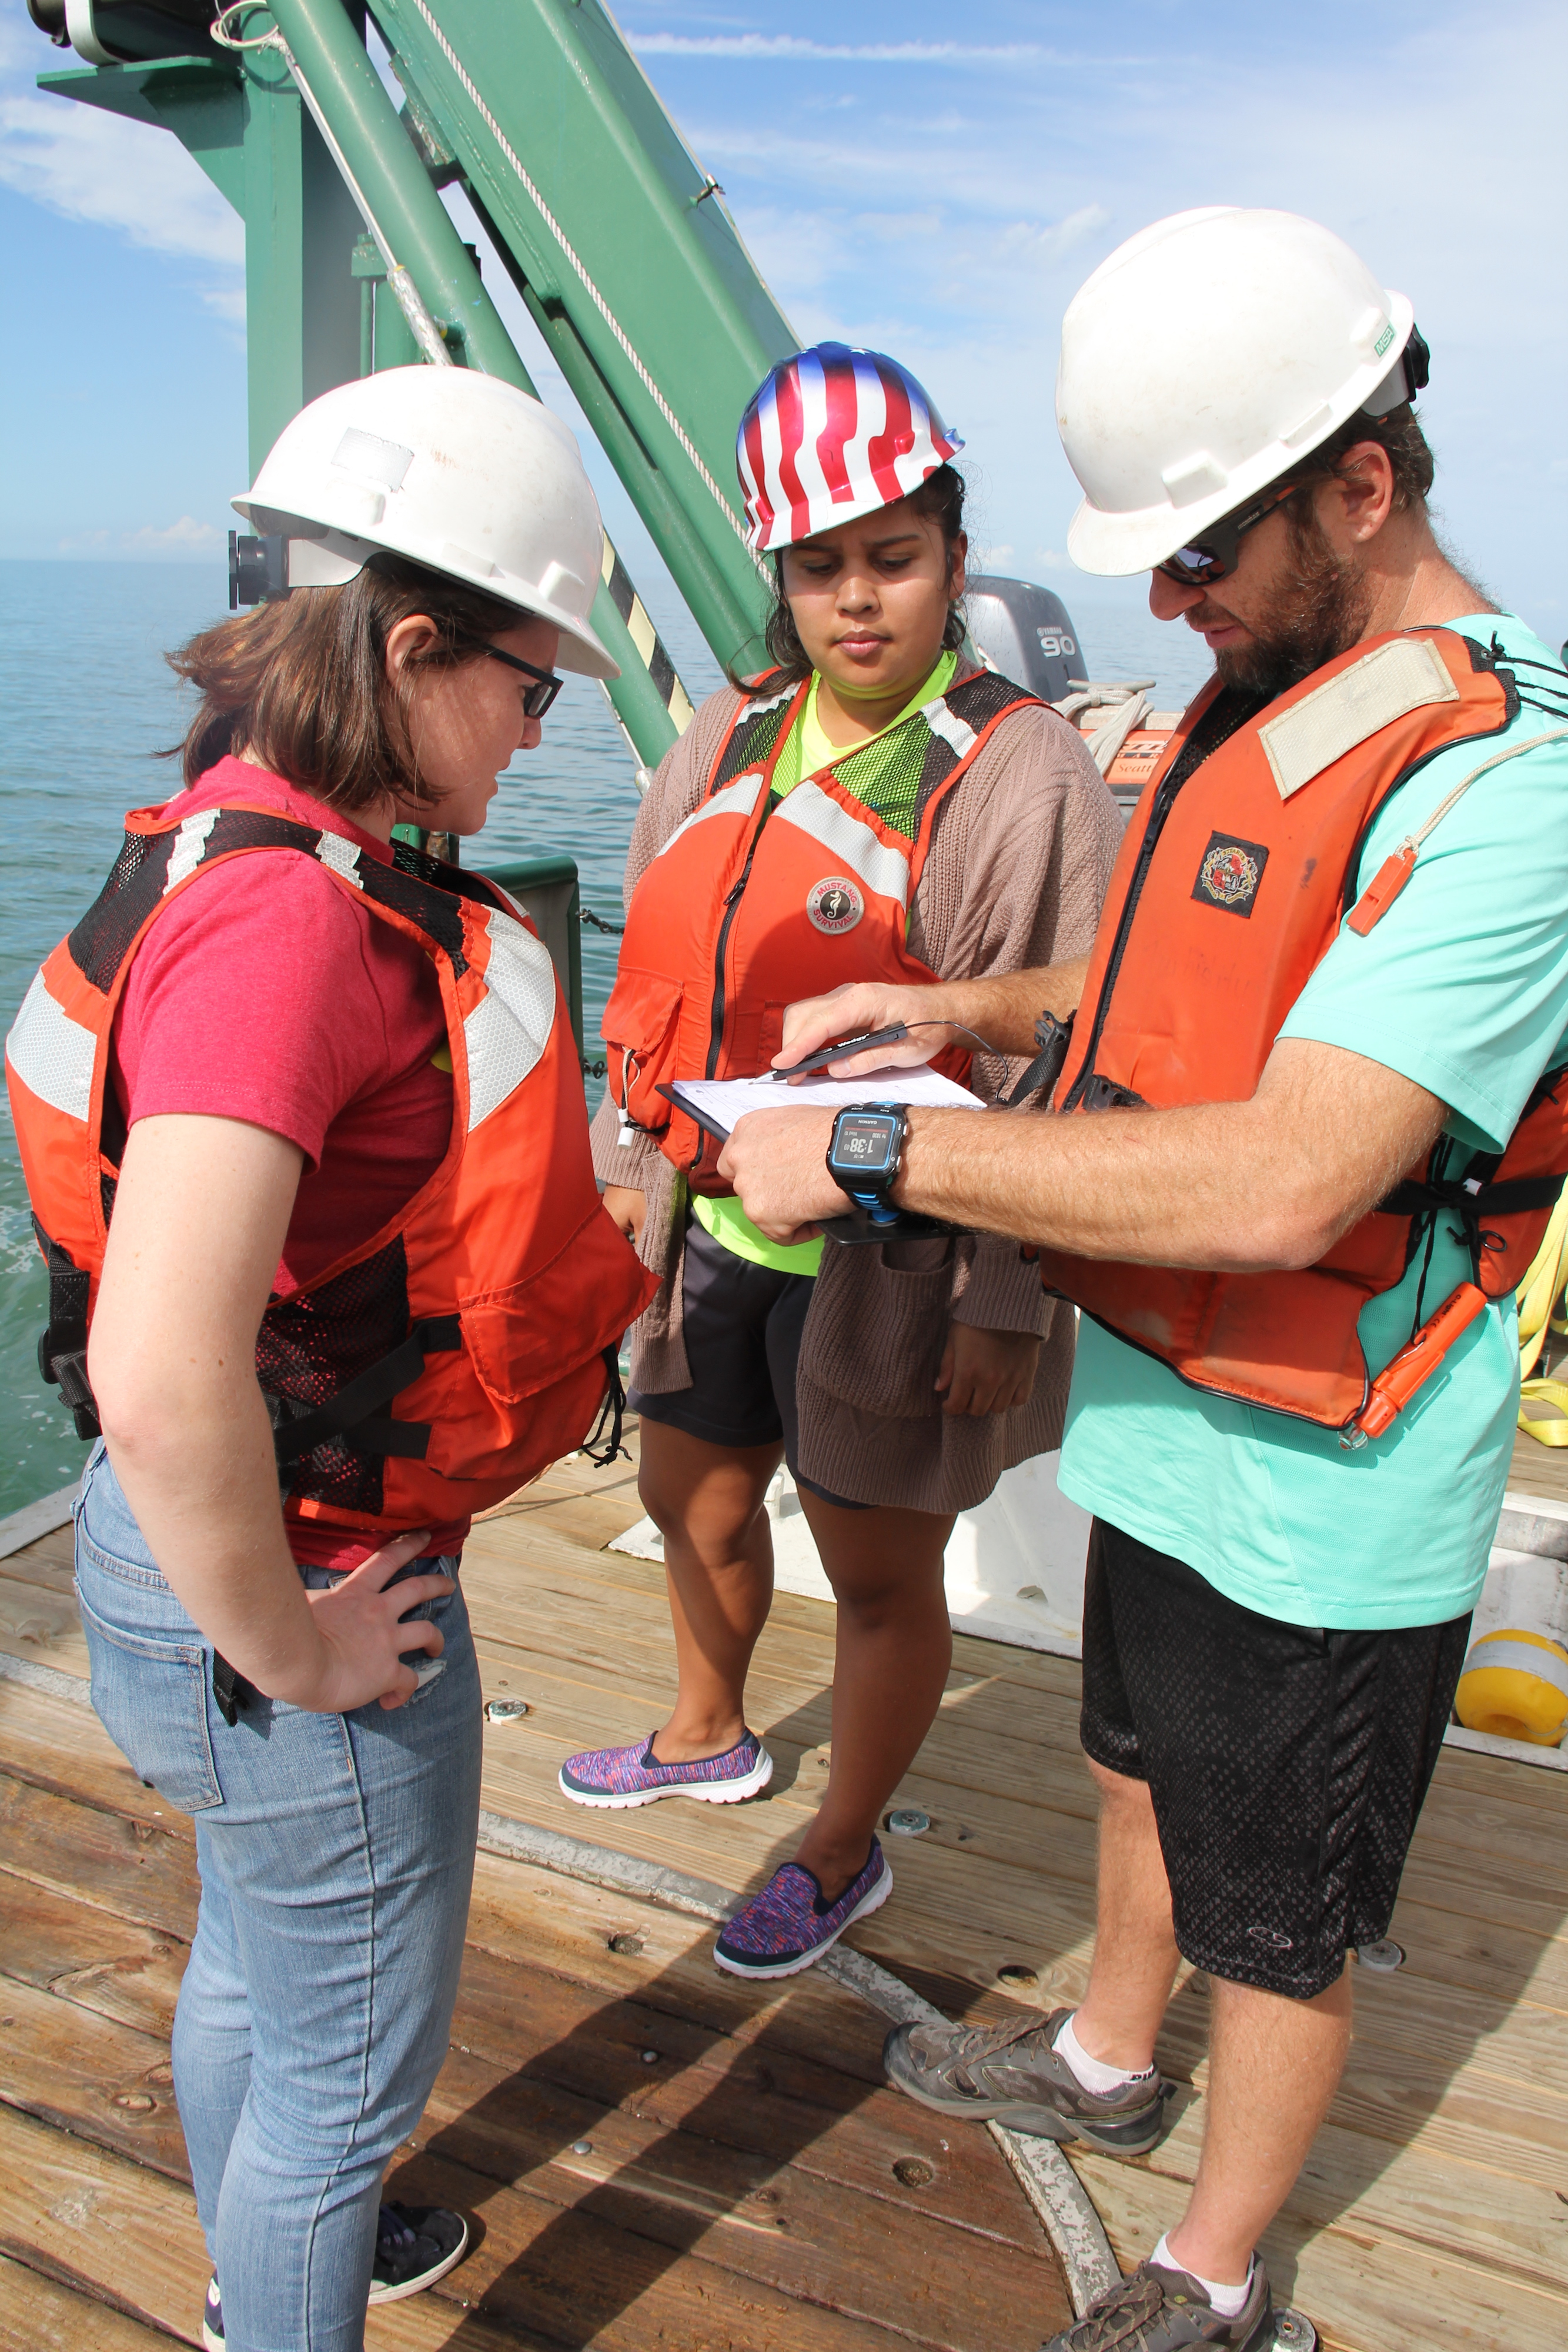 Scientists review data sheet on observation deck. Image credit: NOAA